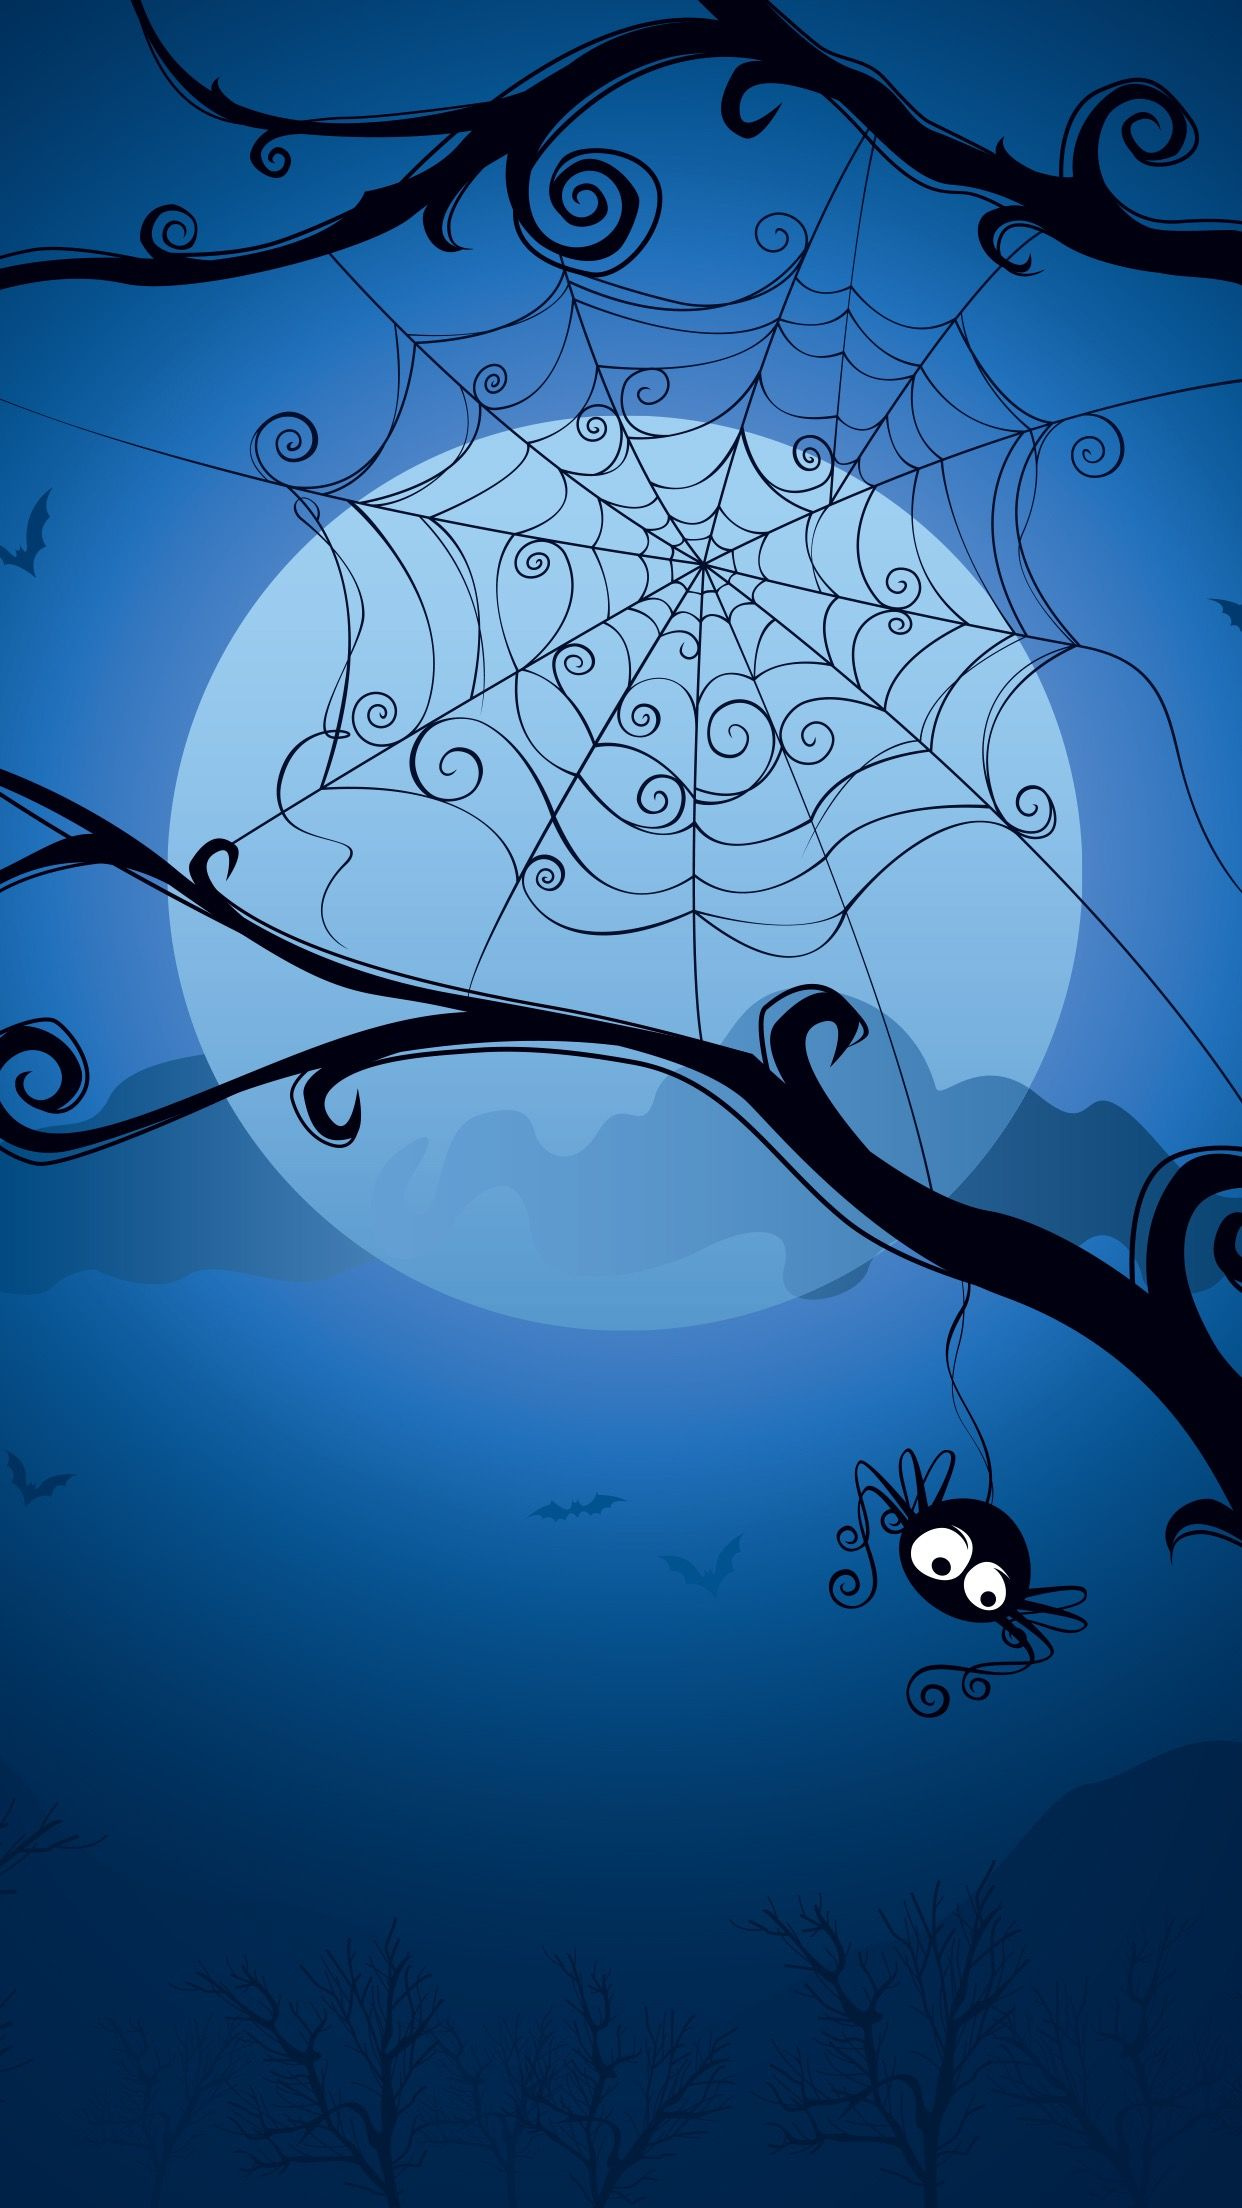 Halloween Wallpaper Iphone Wallpapers Wall Papers Snoopy Nova Creepy Thanksgiving Sugar Backgrounds